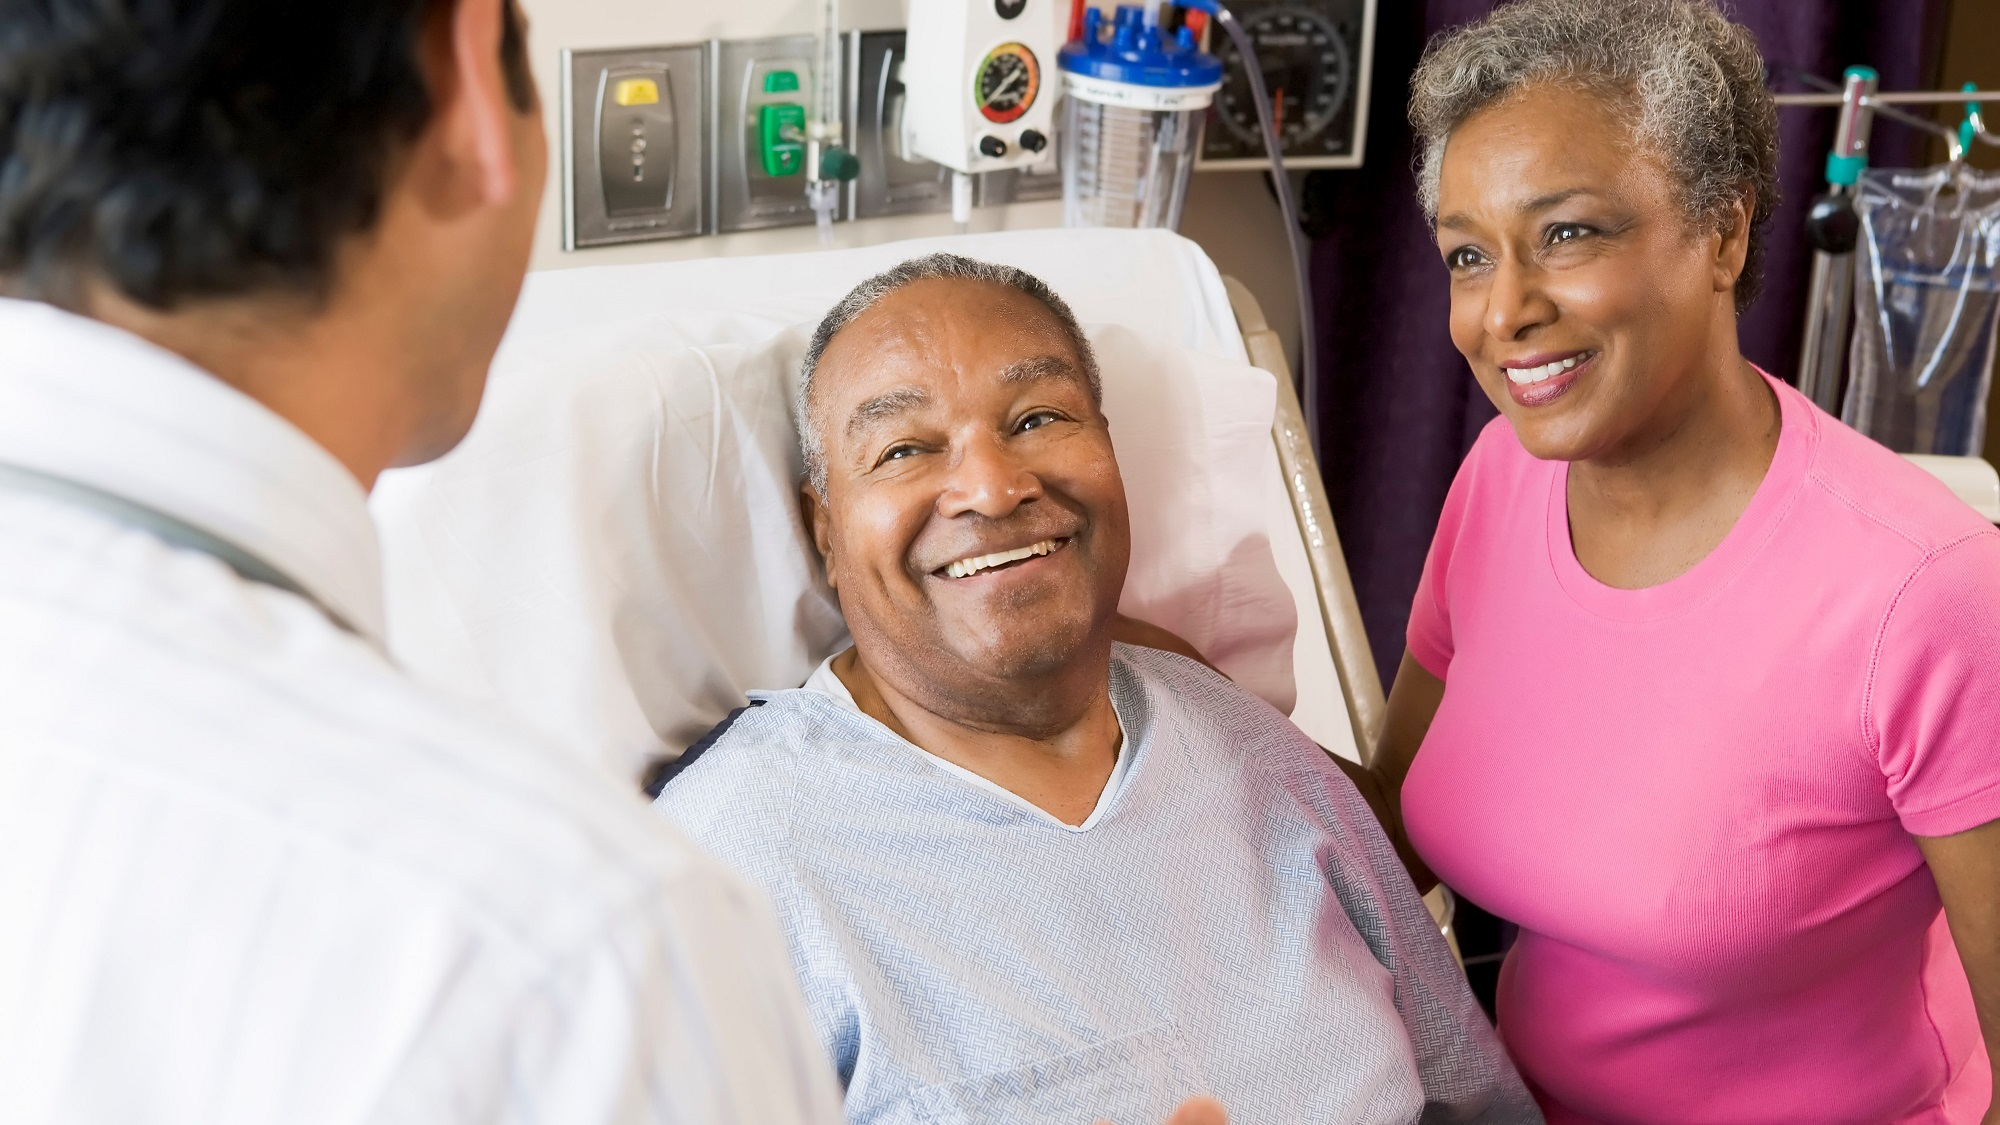 Why Health Care Organizations Should Make Patient Safety A